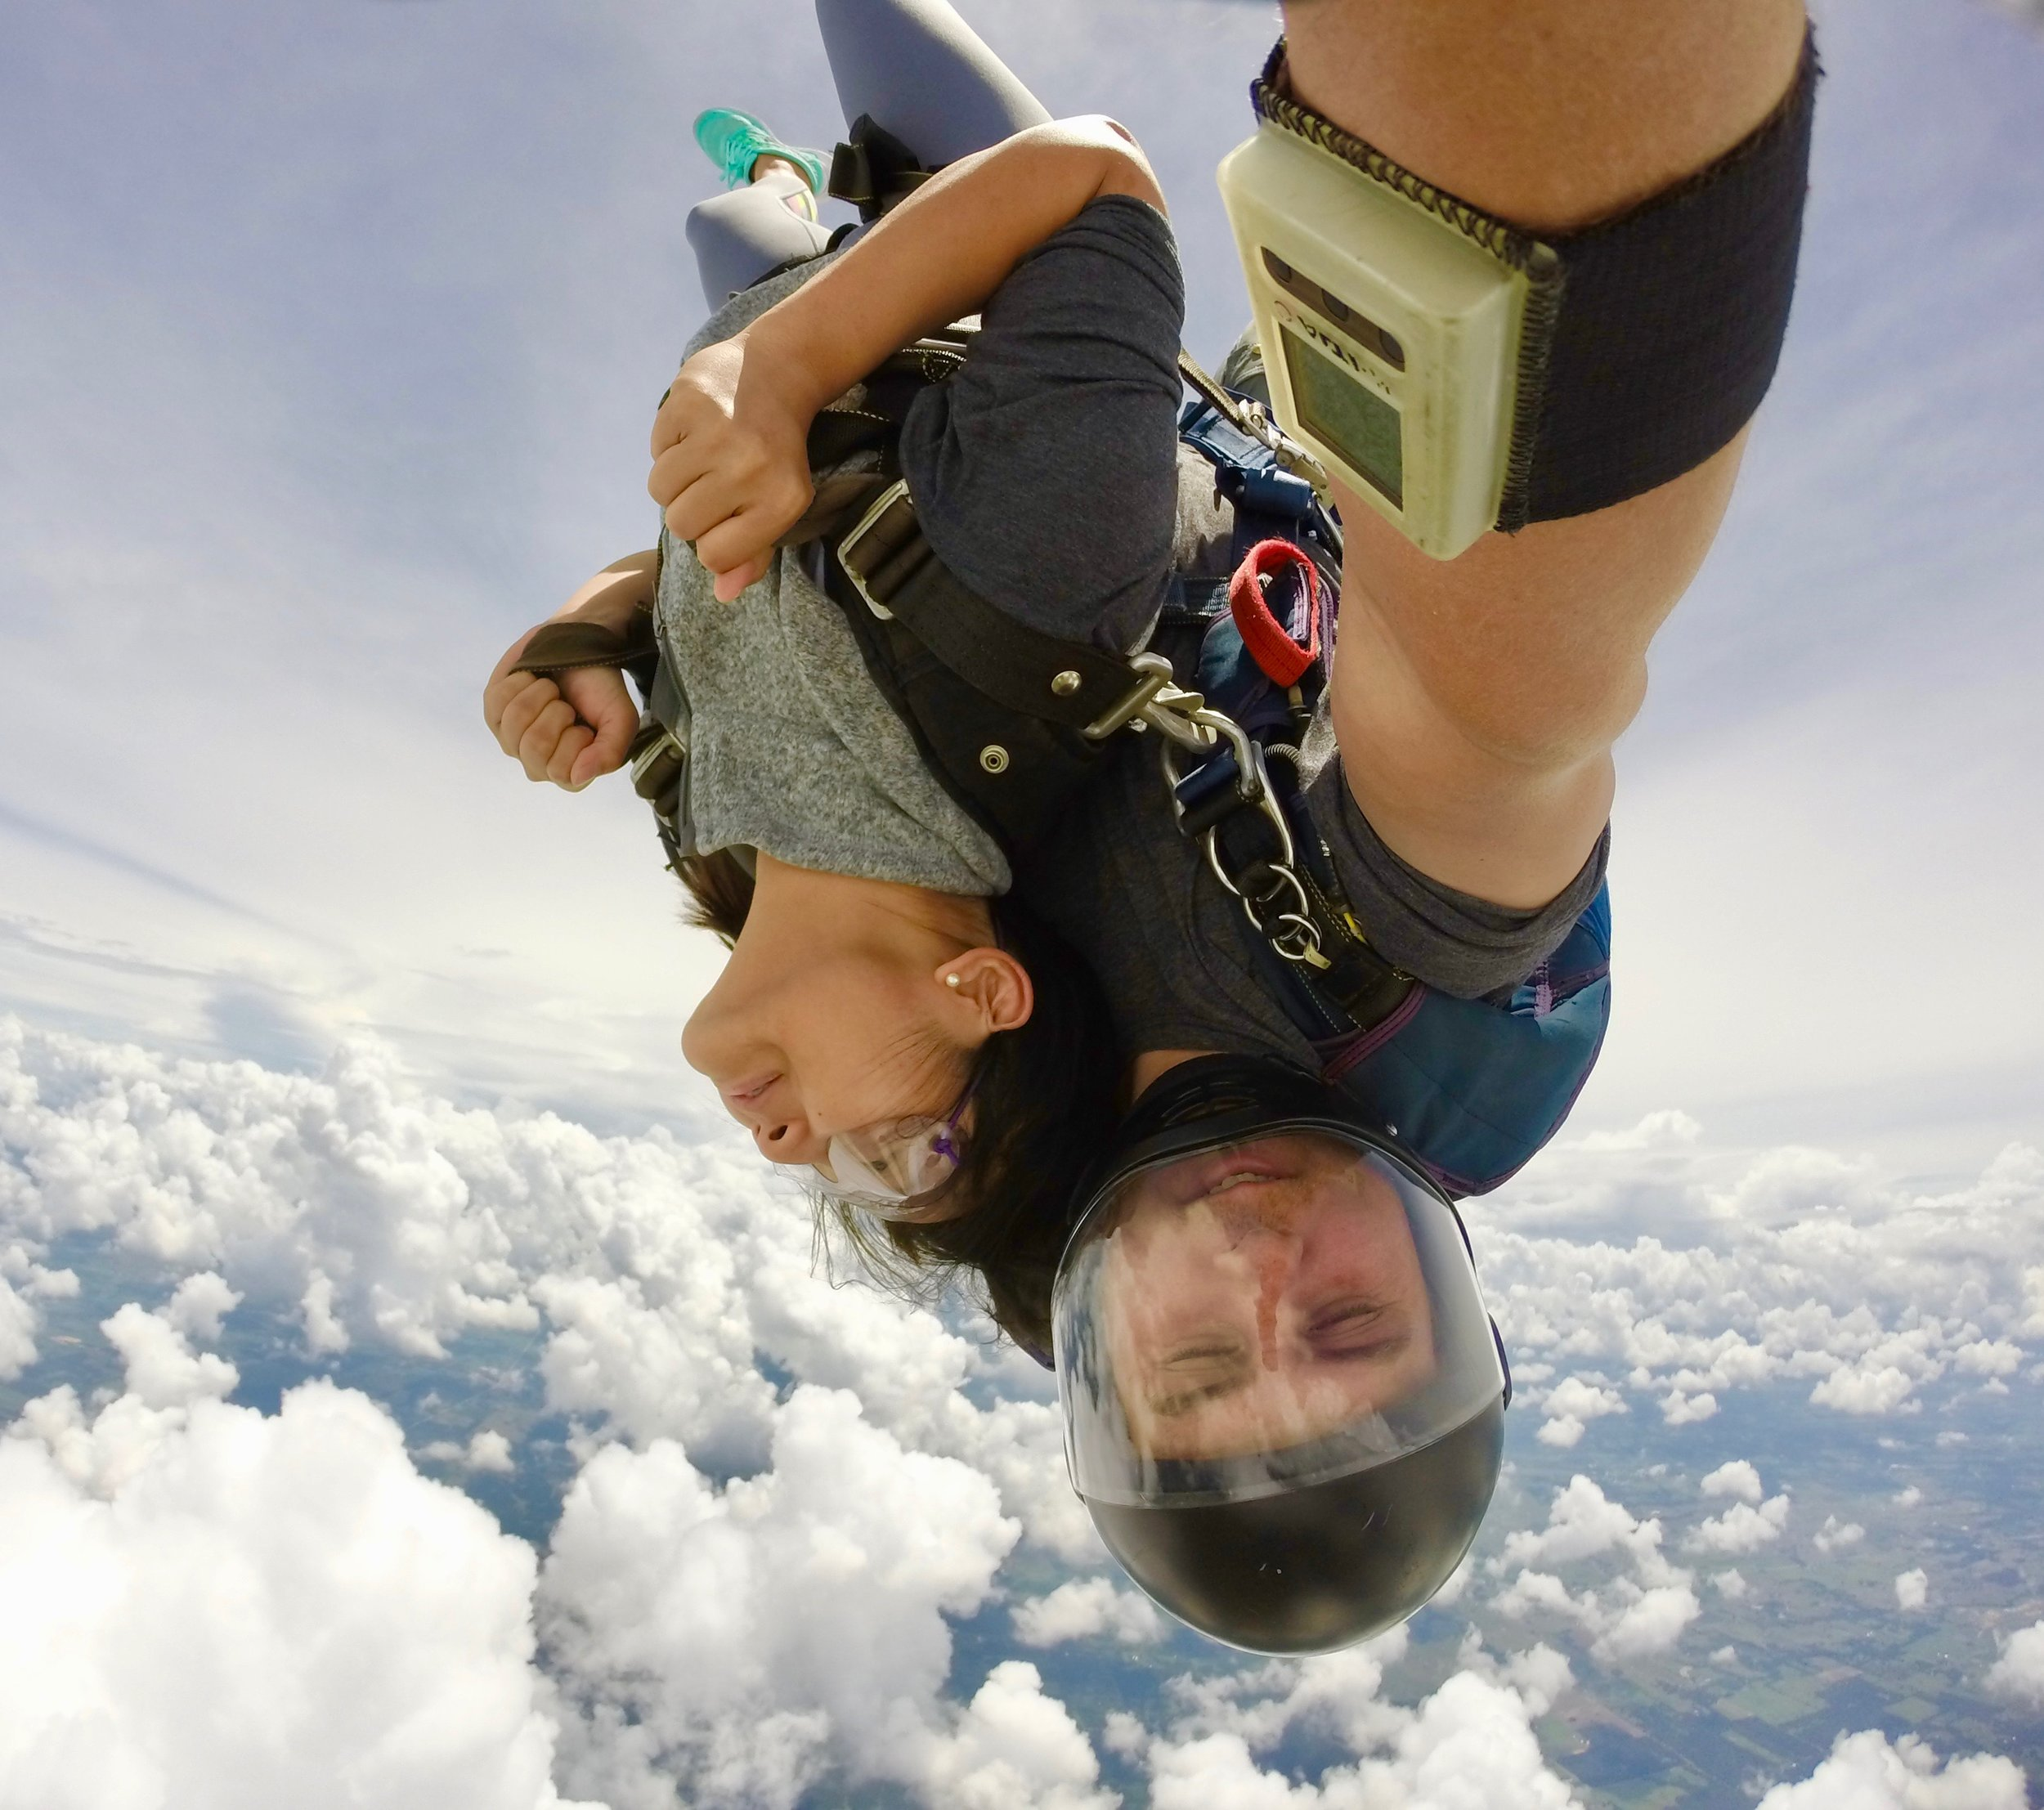 Heads in the clouds at Texas Skydiving!